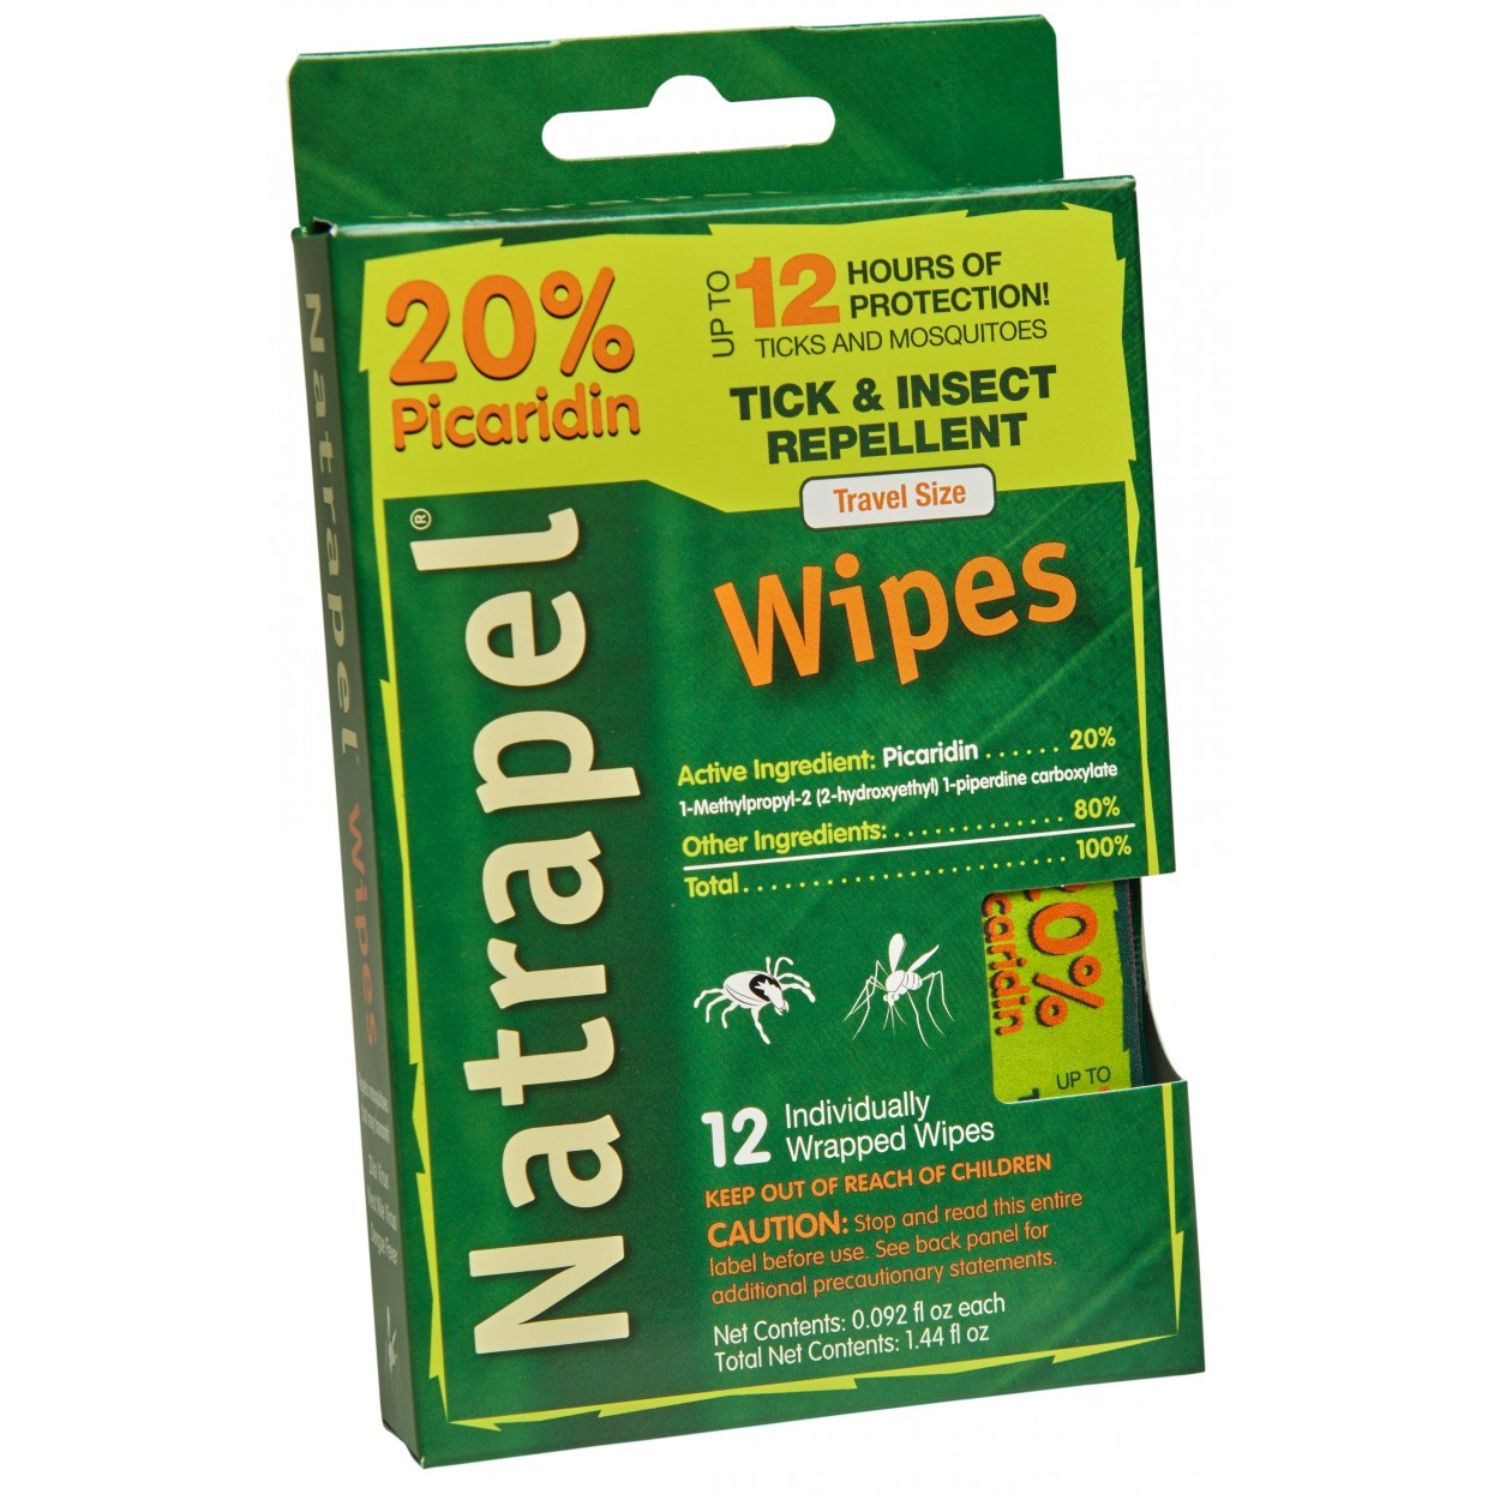 Natrapel 12-hour Picaridin Wipes 12 Count